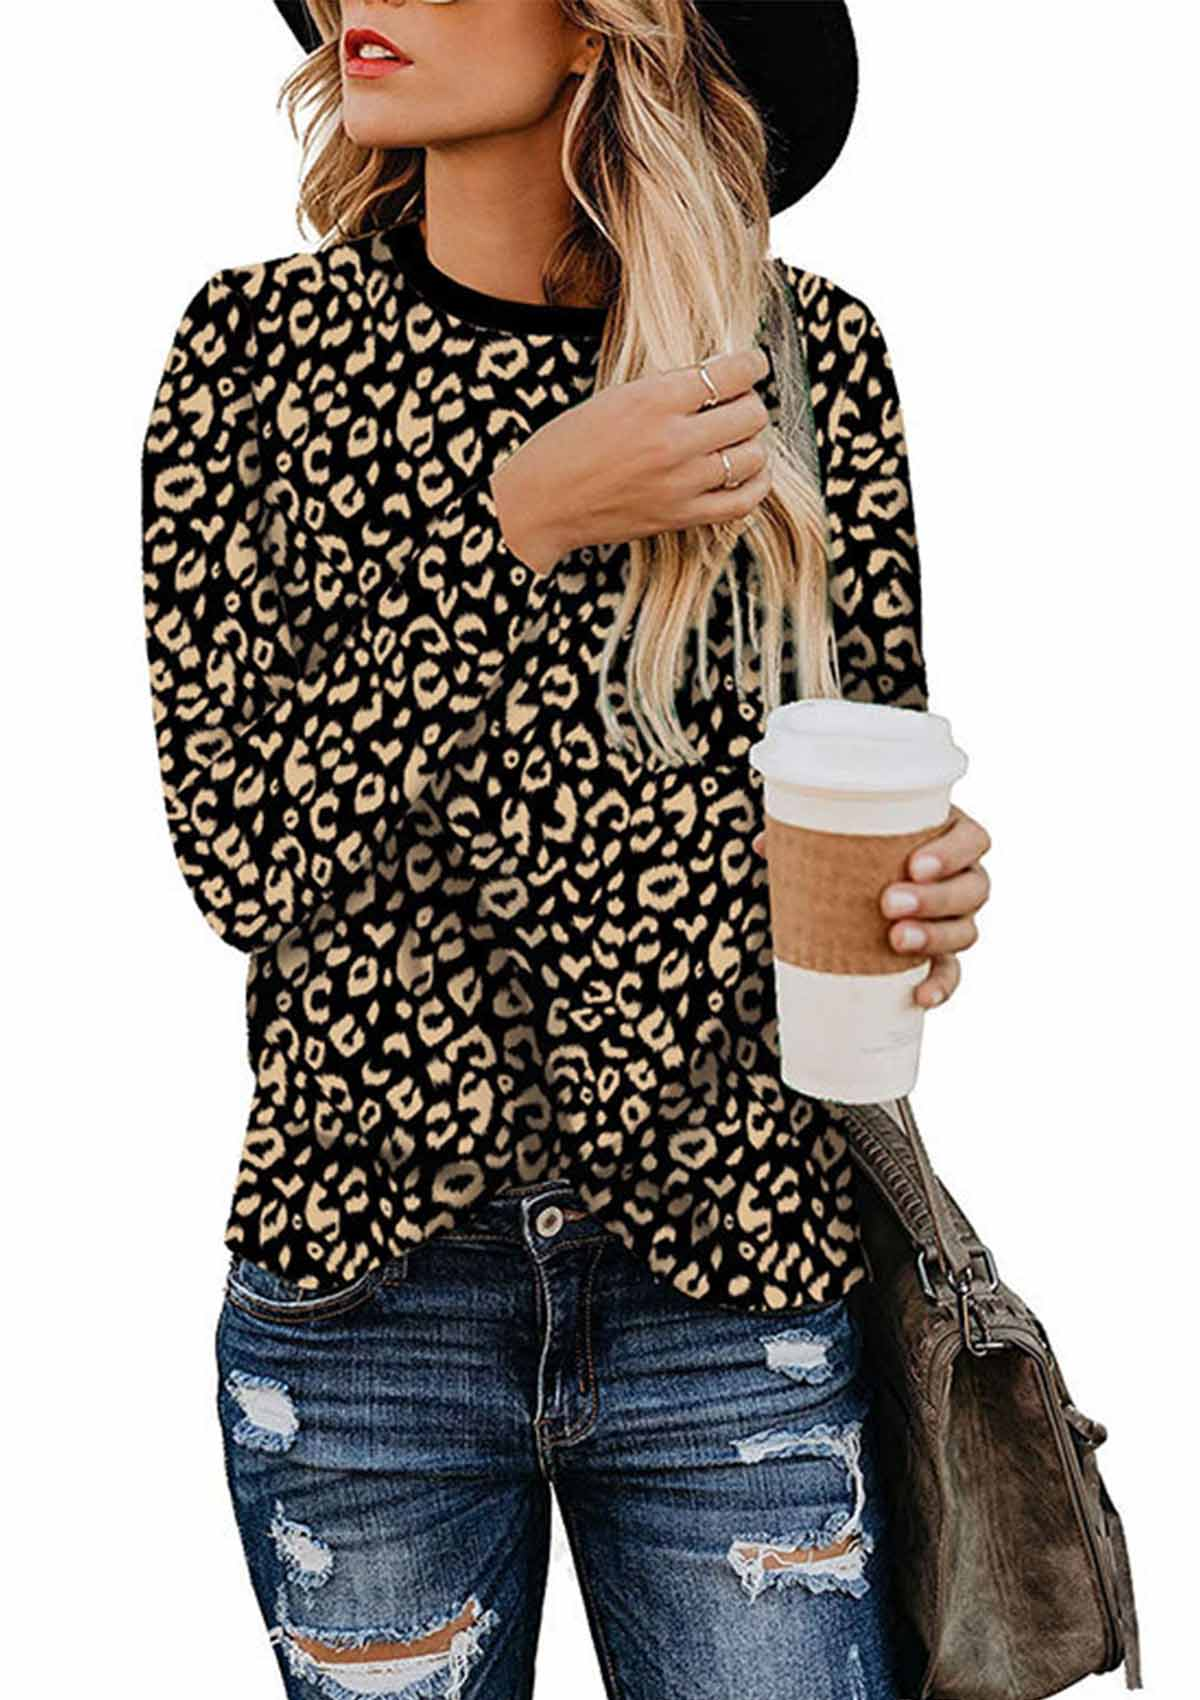 Leopard Print Long Sleeve Shirt